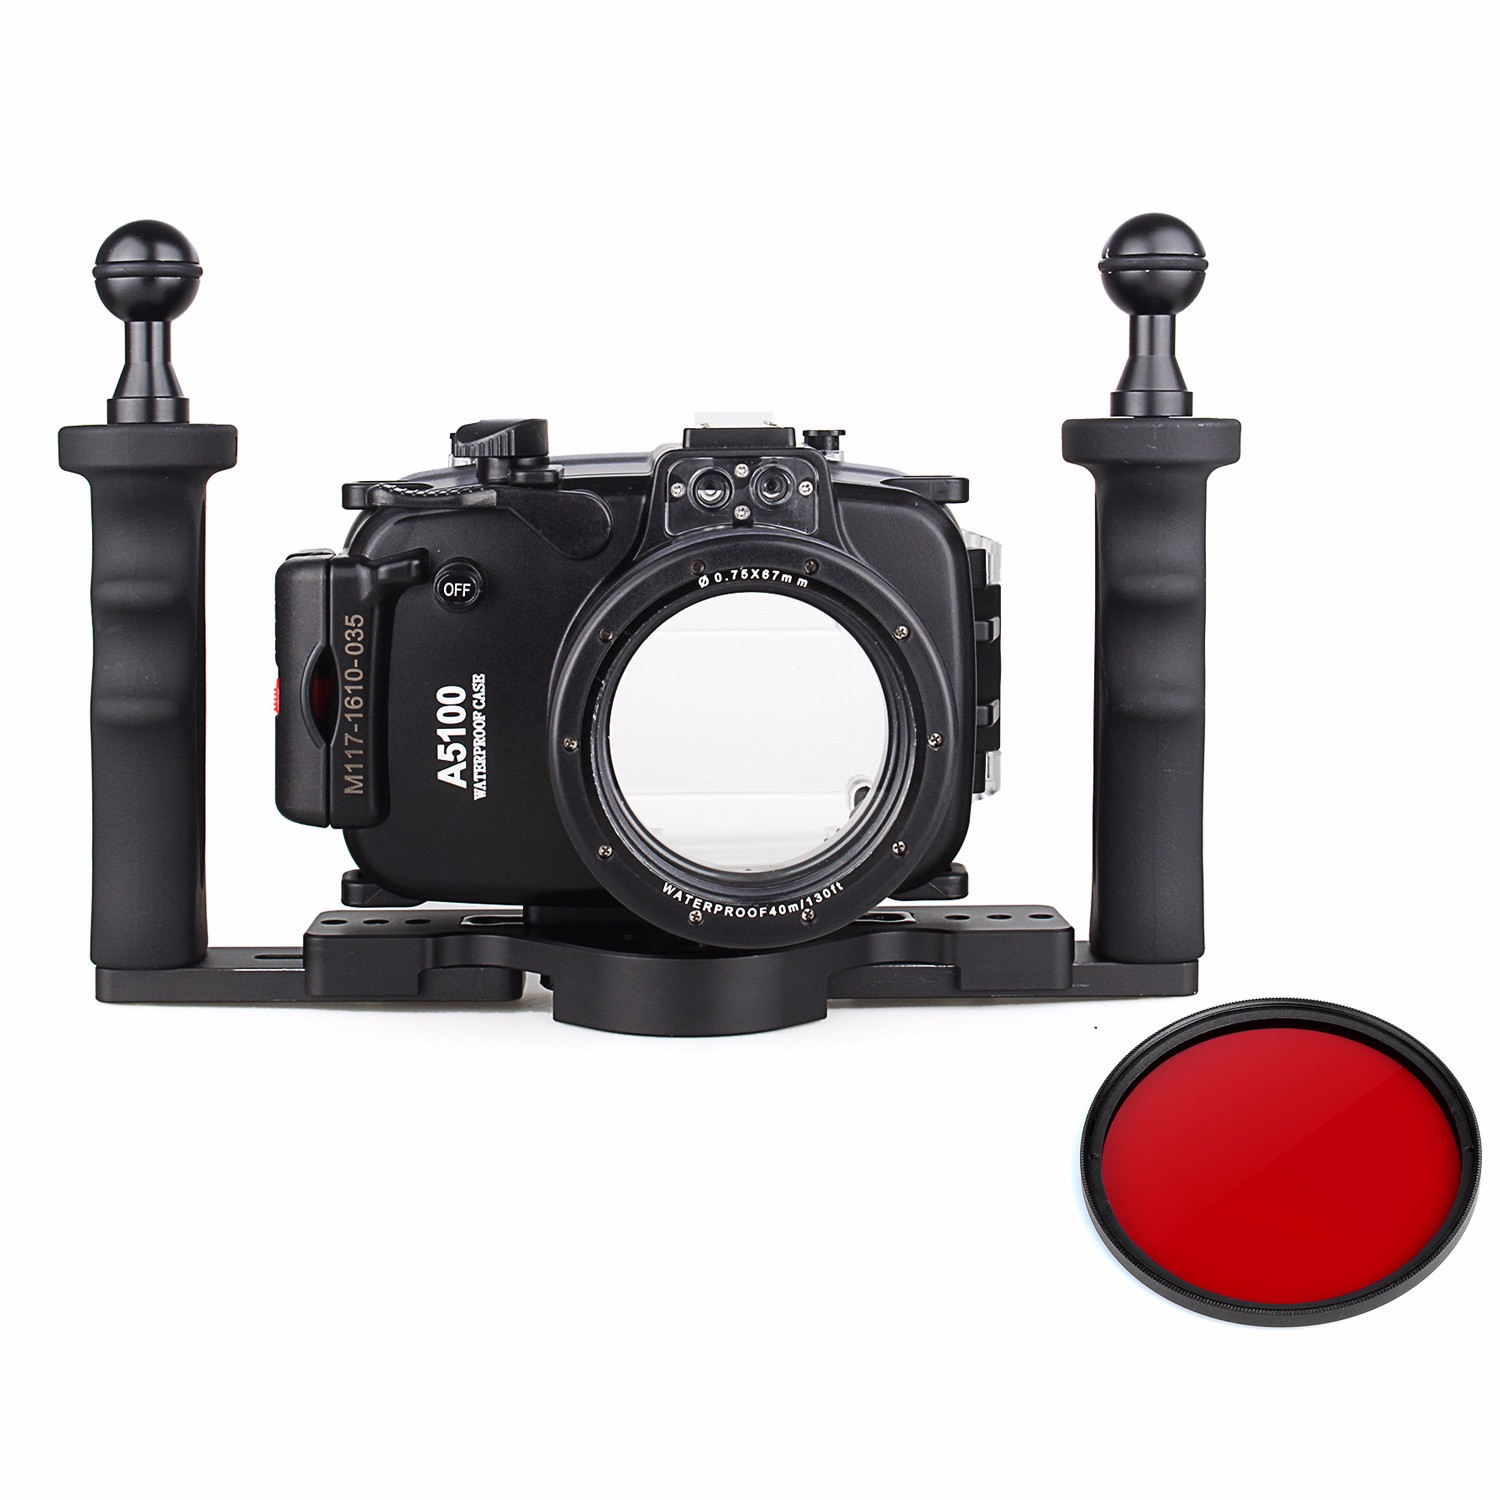 40m 130ft Waterproof Underwater Camera Housing Case Bag for Sony A5100 16-50mm Lens + Two Hands Aluminium Tray + 67mm Red Filter meikon 40m waterproof underwater camera housing case bag for canon 600d t3i